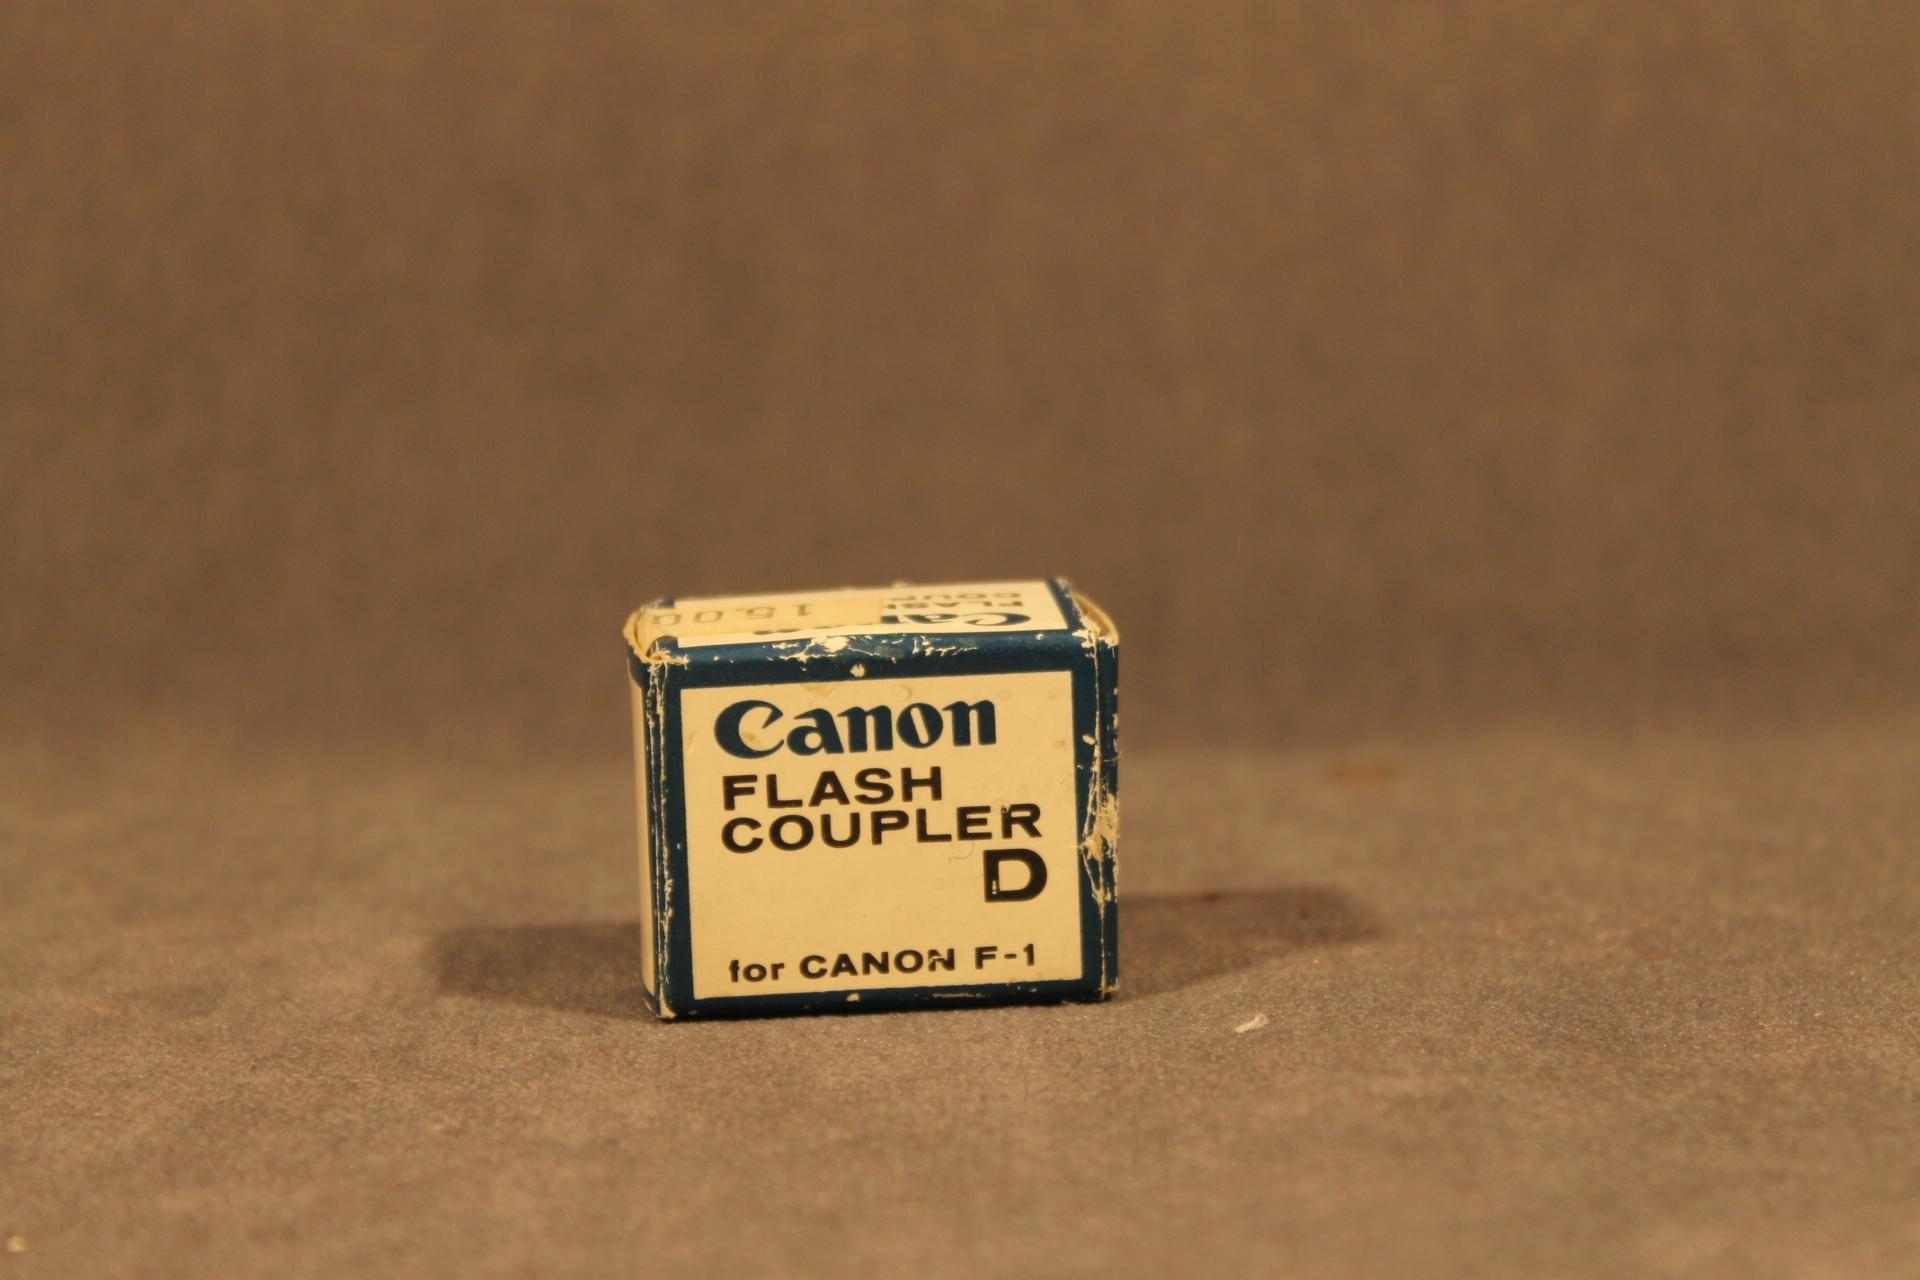 canon flash coupler d